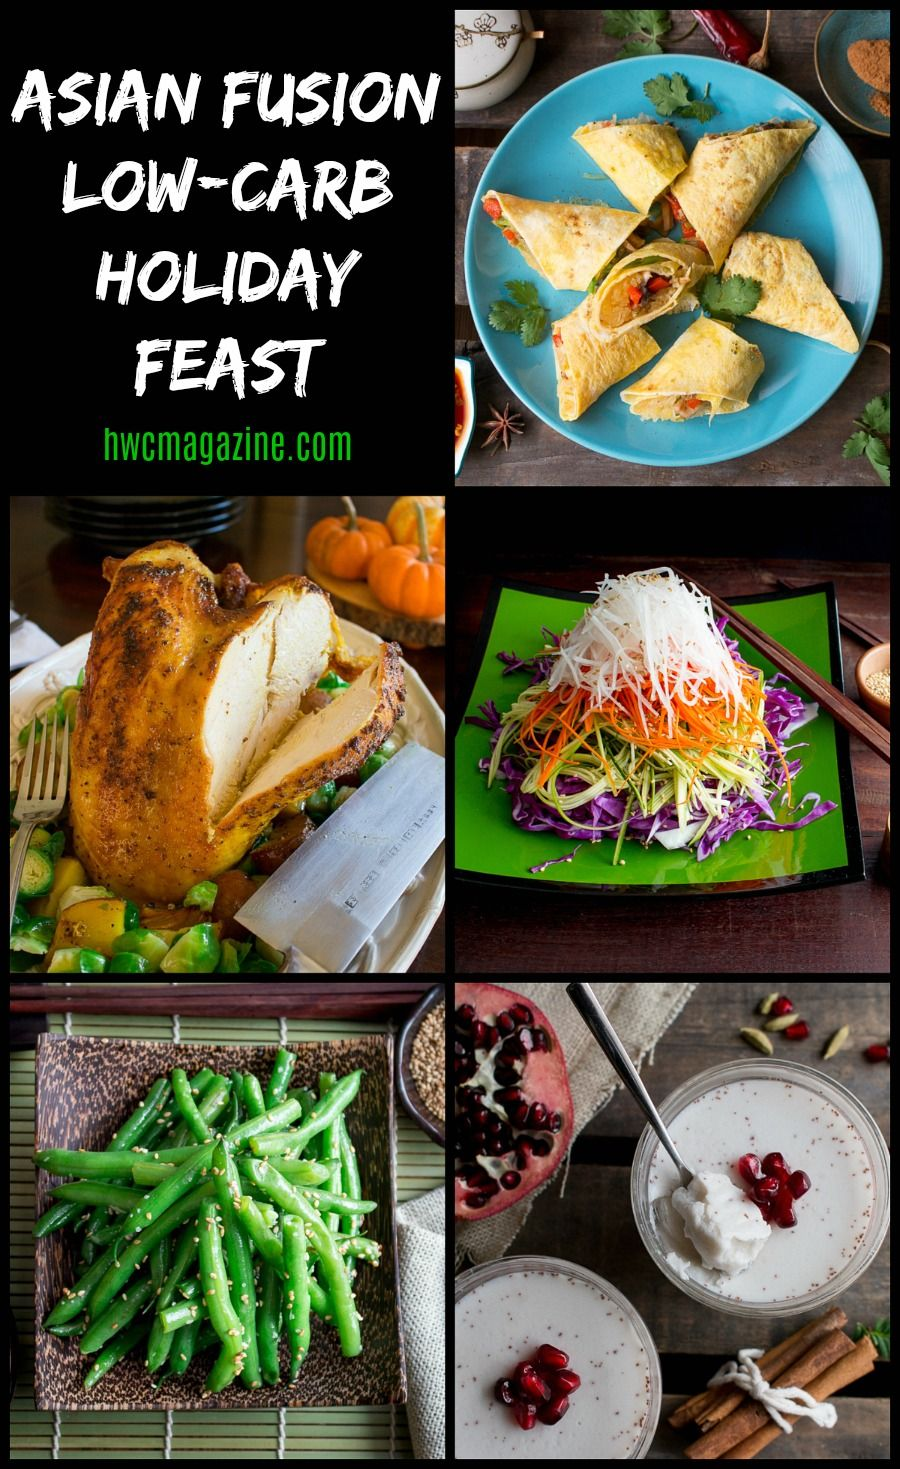 Asian fusion lowcarb holiday feast lowcarb holiday